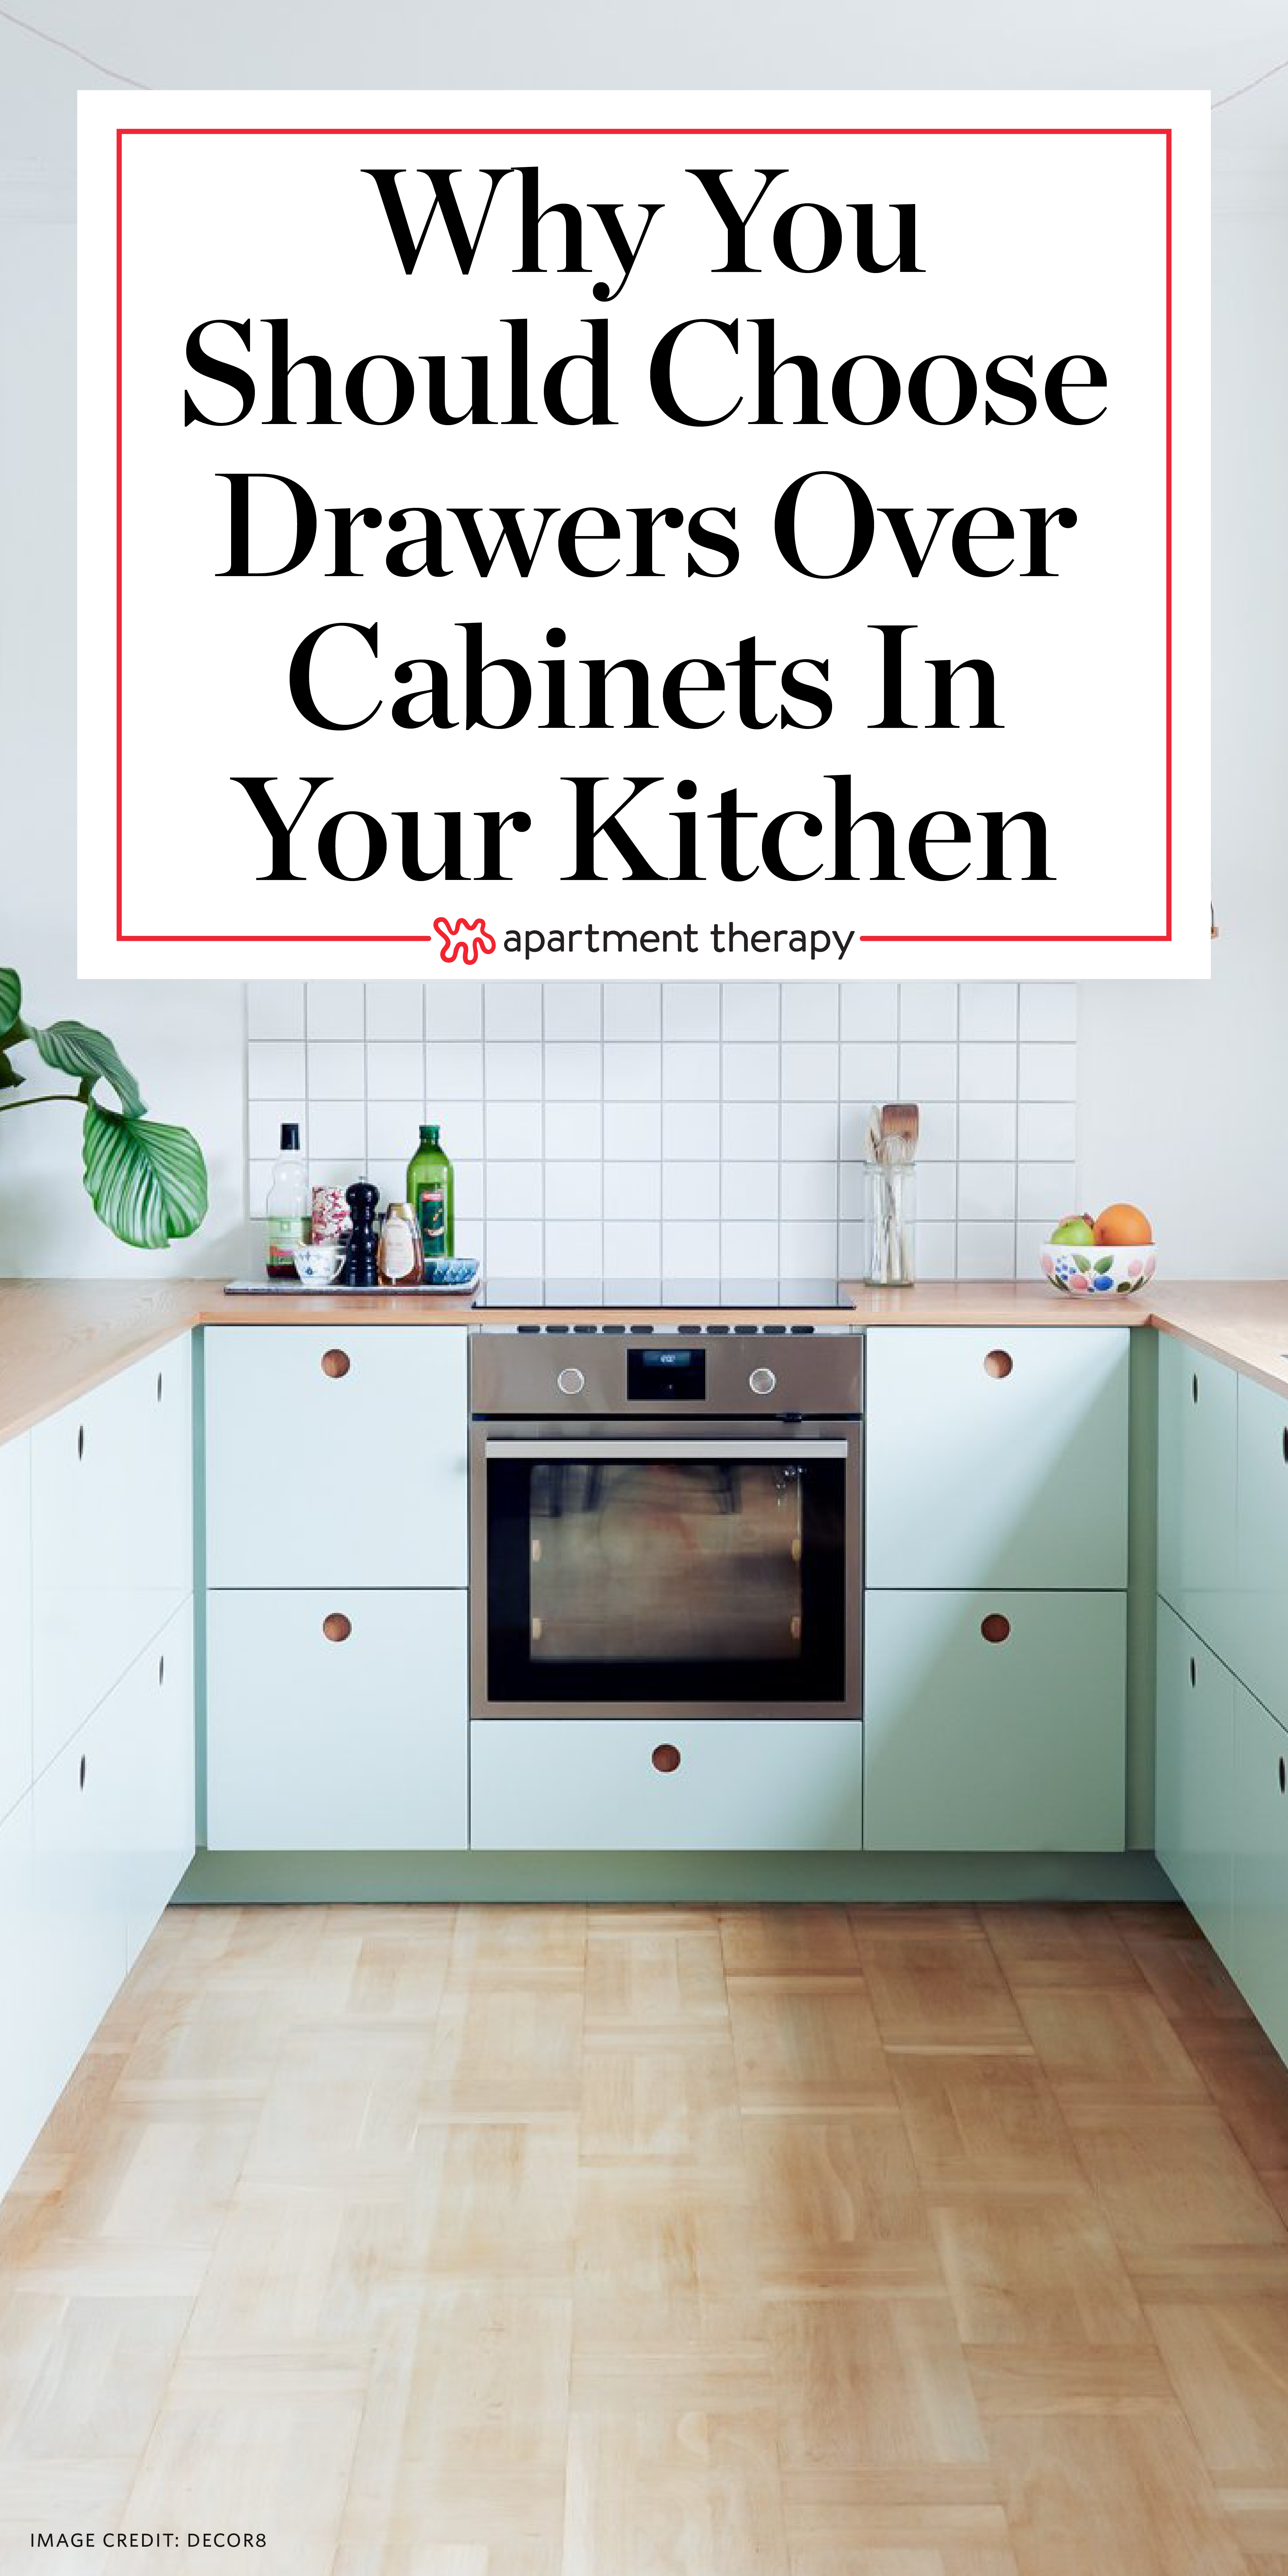 Kitchen Cabinets Versus Drawers Pros Cons Apartment Therapy